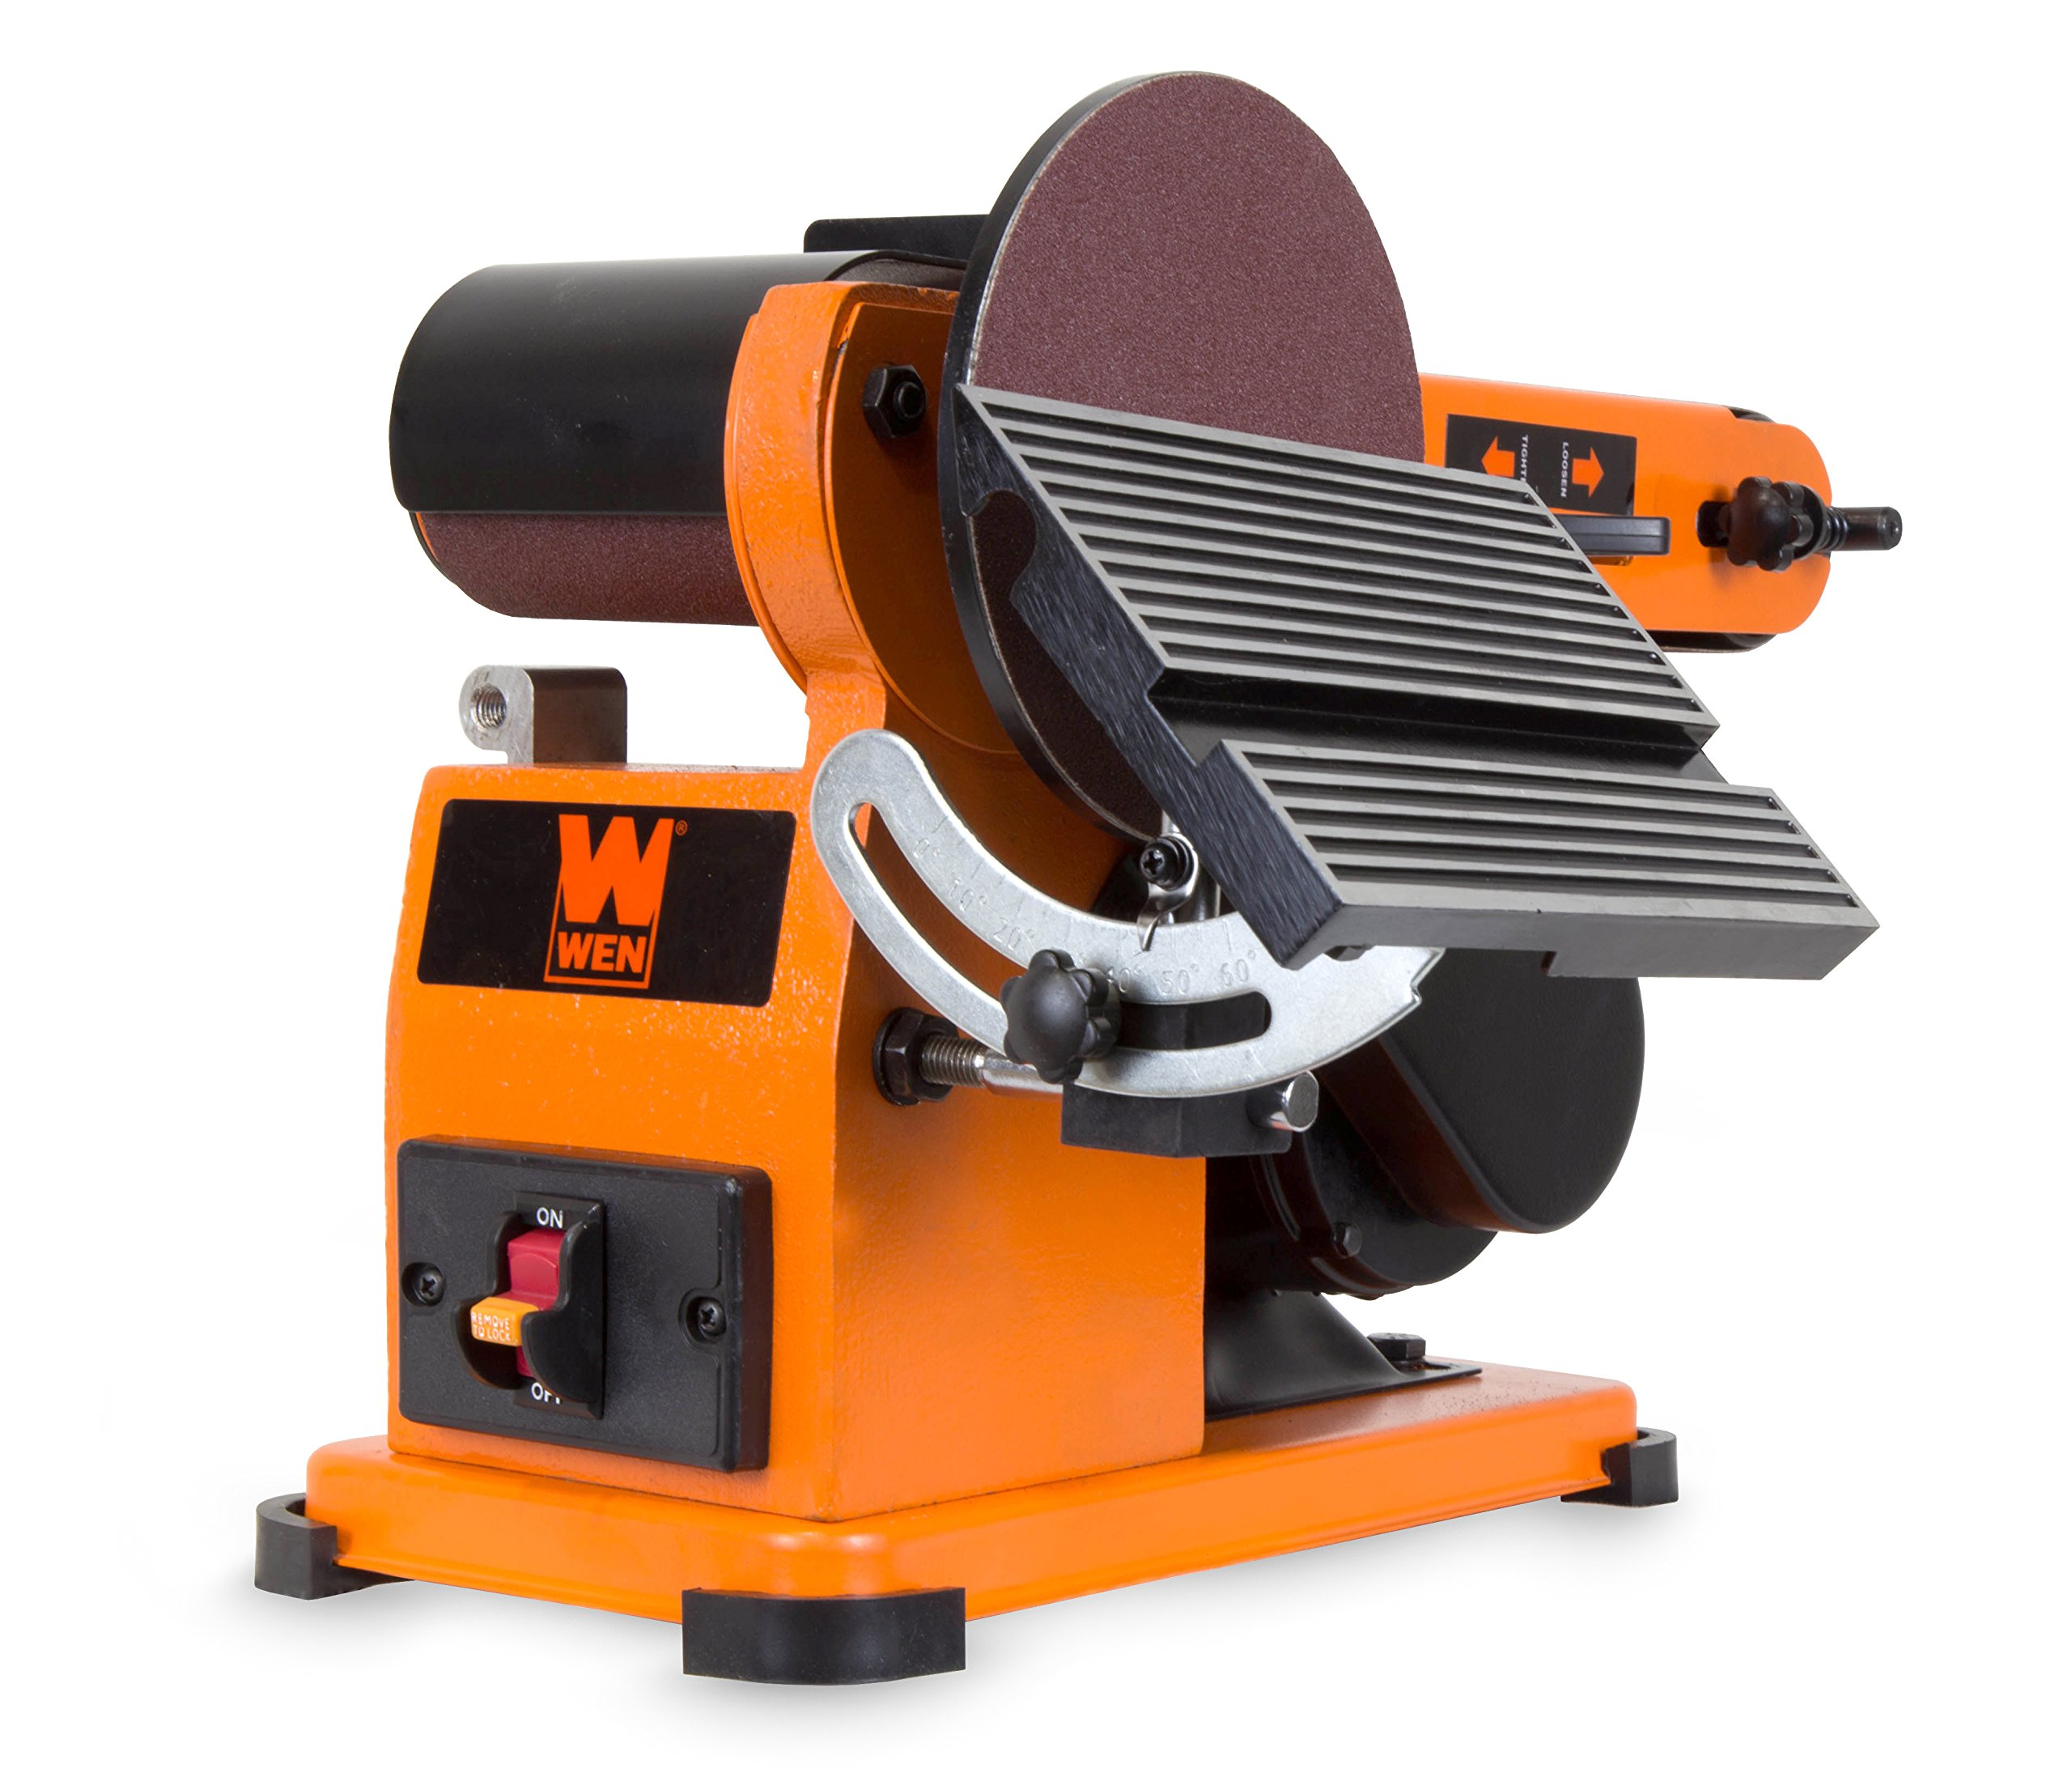 WEN 6500 4 x 36-Inch Belt and 6-Inch Disc Sander with Steel Base by WEN (Image #1)